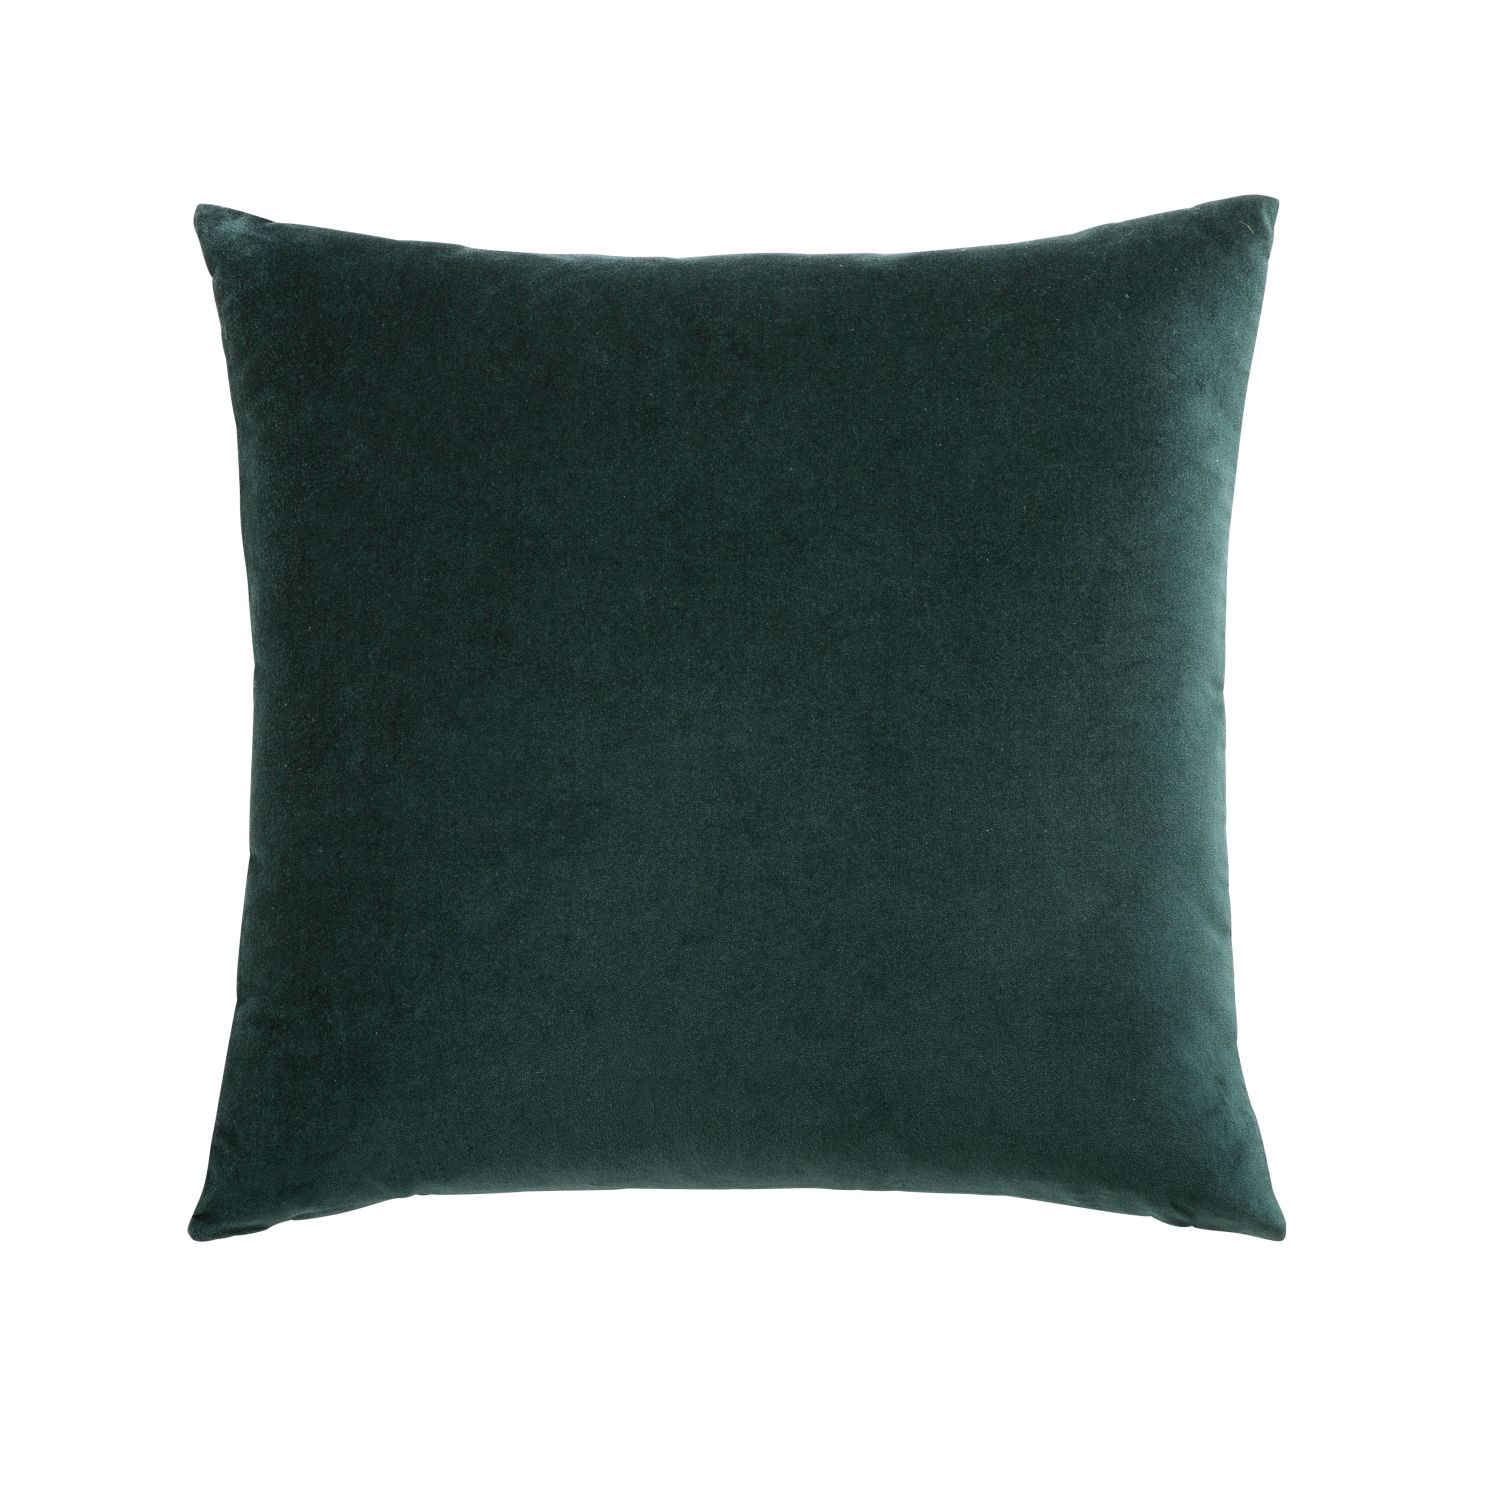 coussin en velours vert meraude 45x45 maisons du monde. Black Bedroom Furniture Sets. Home Design Ideas